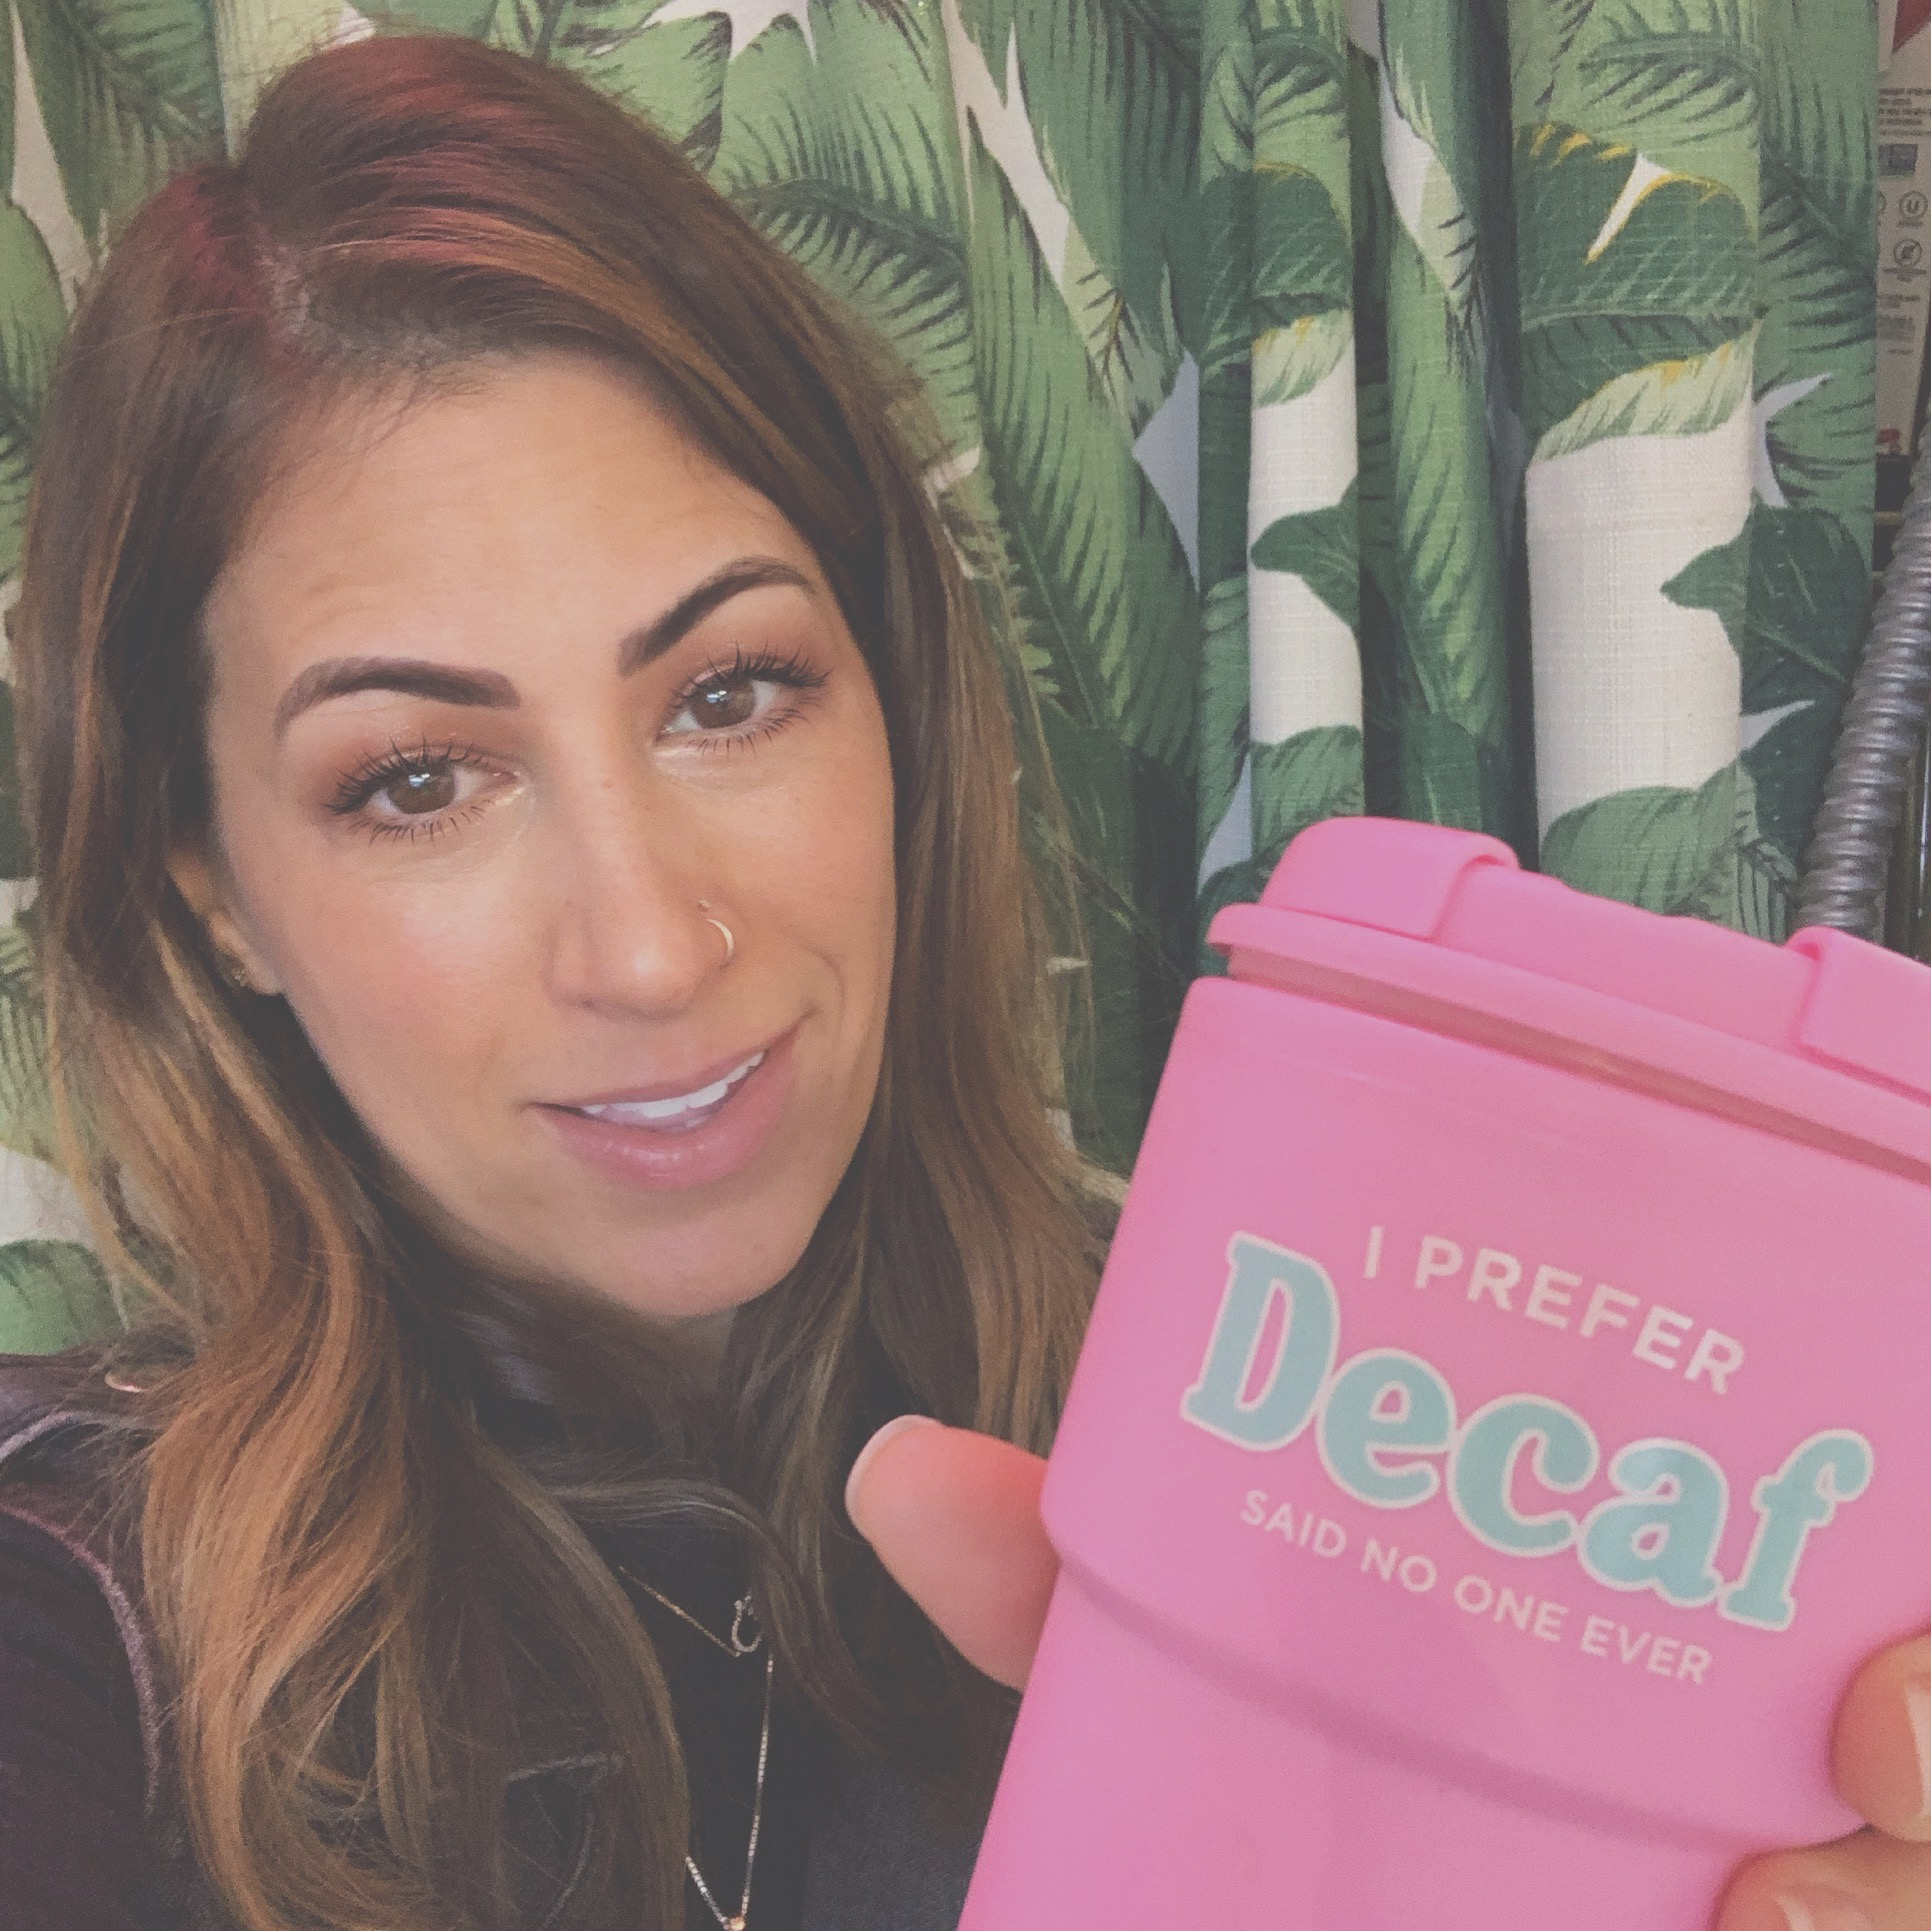 Happy INTERNATIONAL Women's day! - March 8, 2019Our Owner Joanna Heart Milliken was featured on Vega Coffee's site to celebrate International Women's day!. As a female owned biz this was so fun to share!